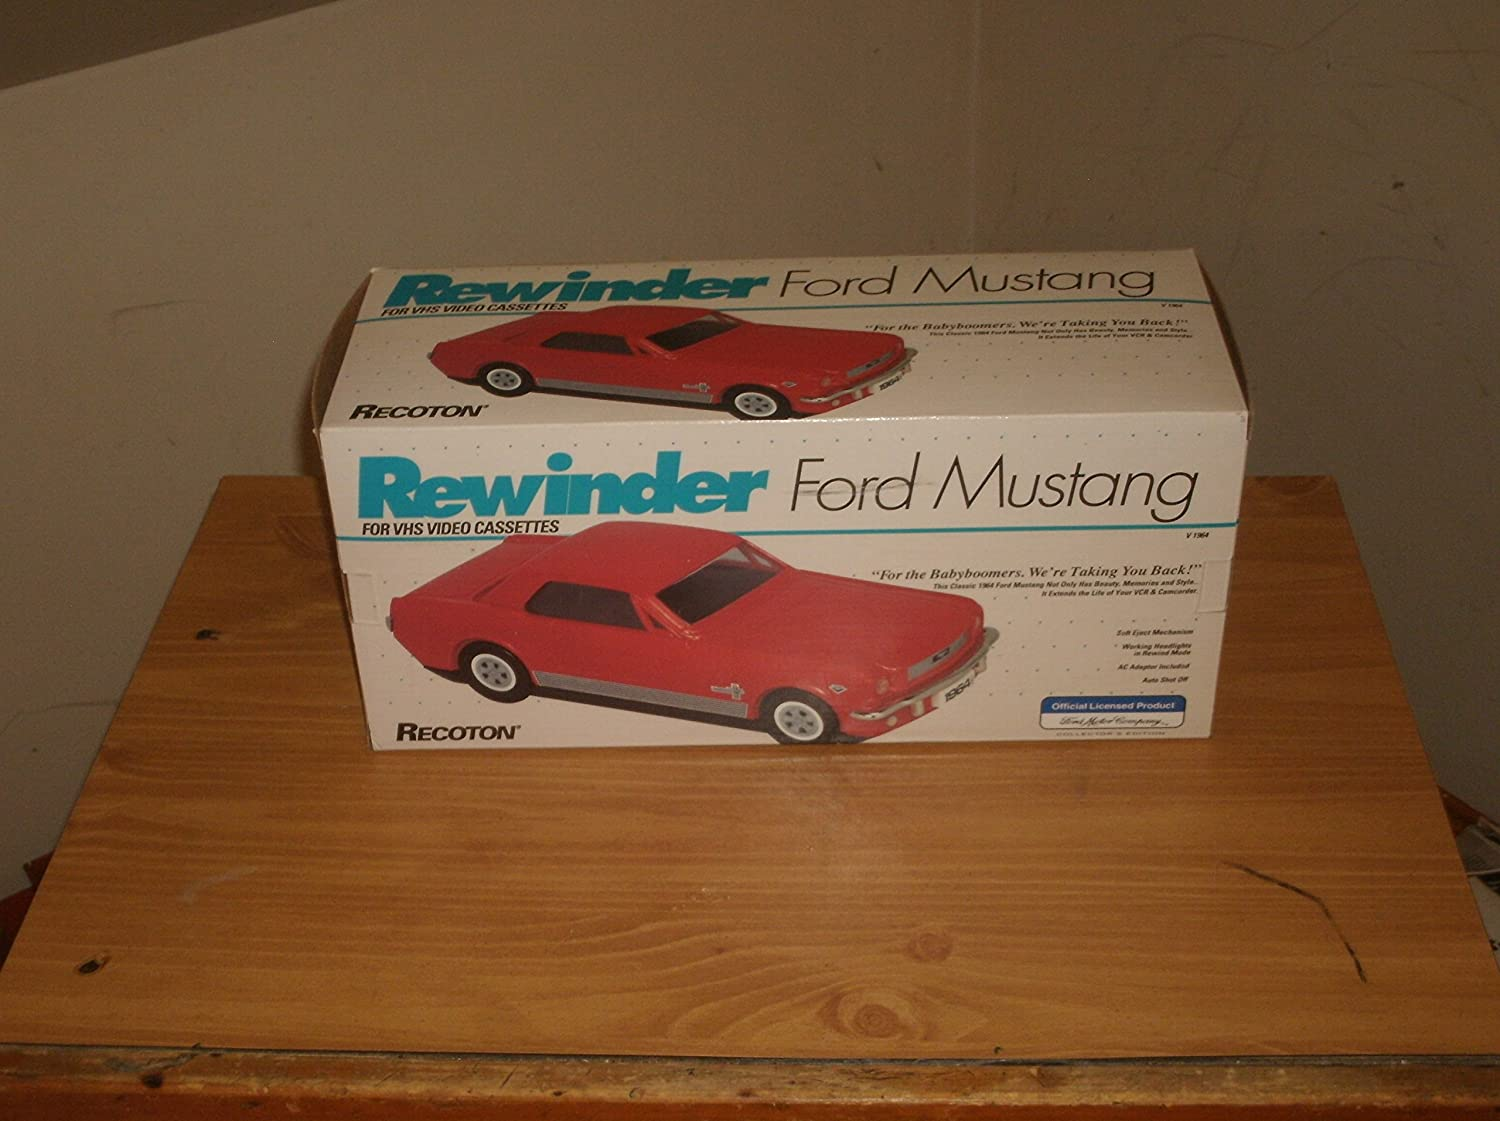 Ambico 1964 Ford Mustang Vhs Video Tape Rewinder Home Grand Torino Audio Theater